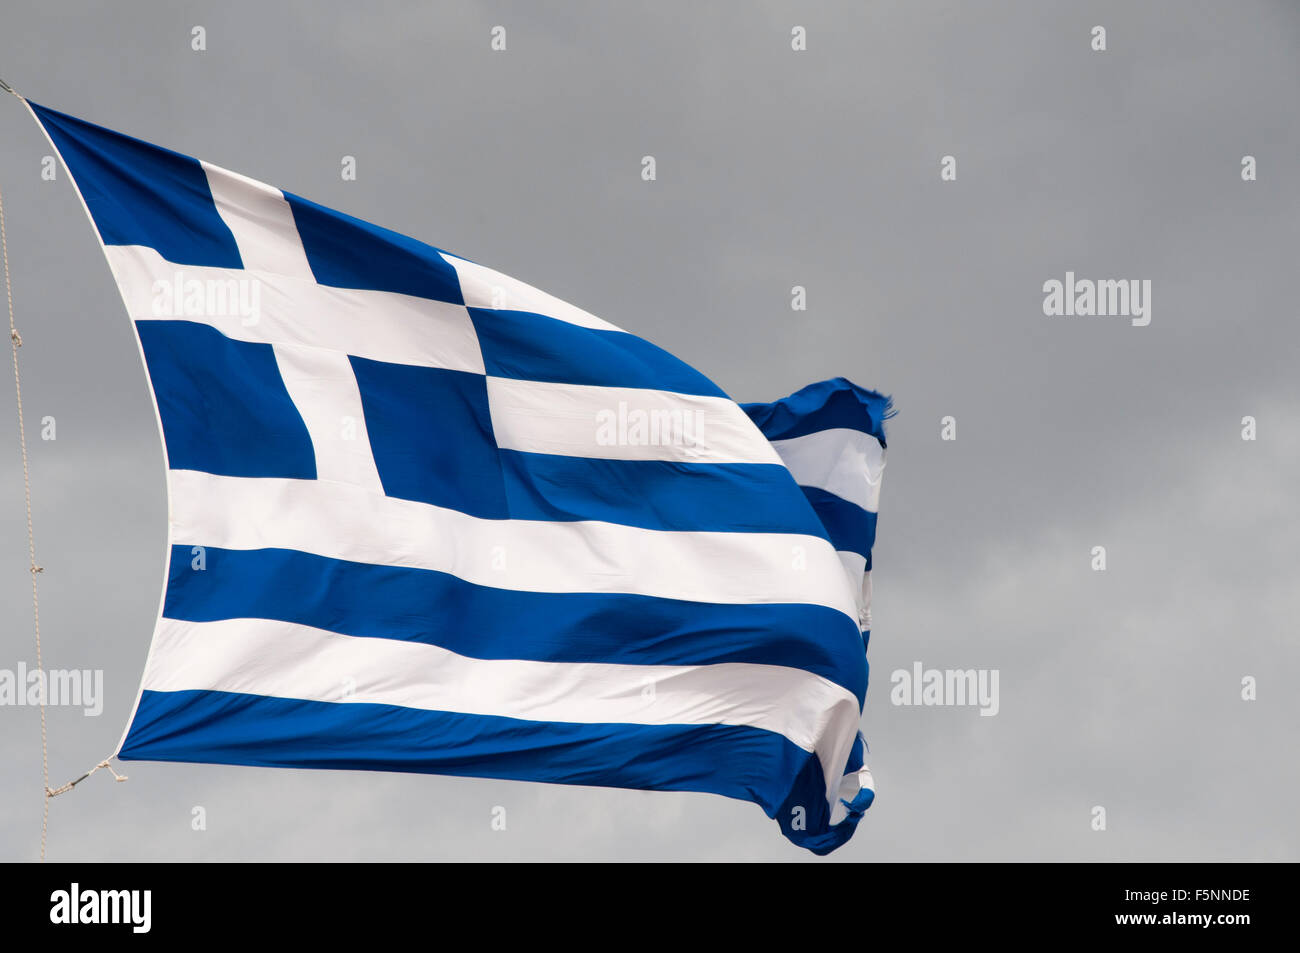 Flag of Greece on top of the Acropolis of Athens.  Griechische Flagge auf der Akropolis in Athen. - Stock Image